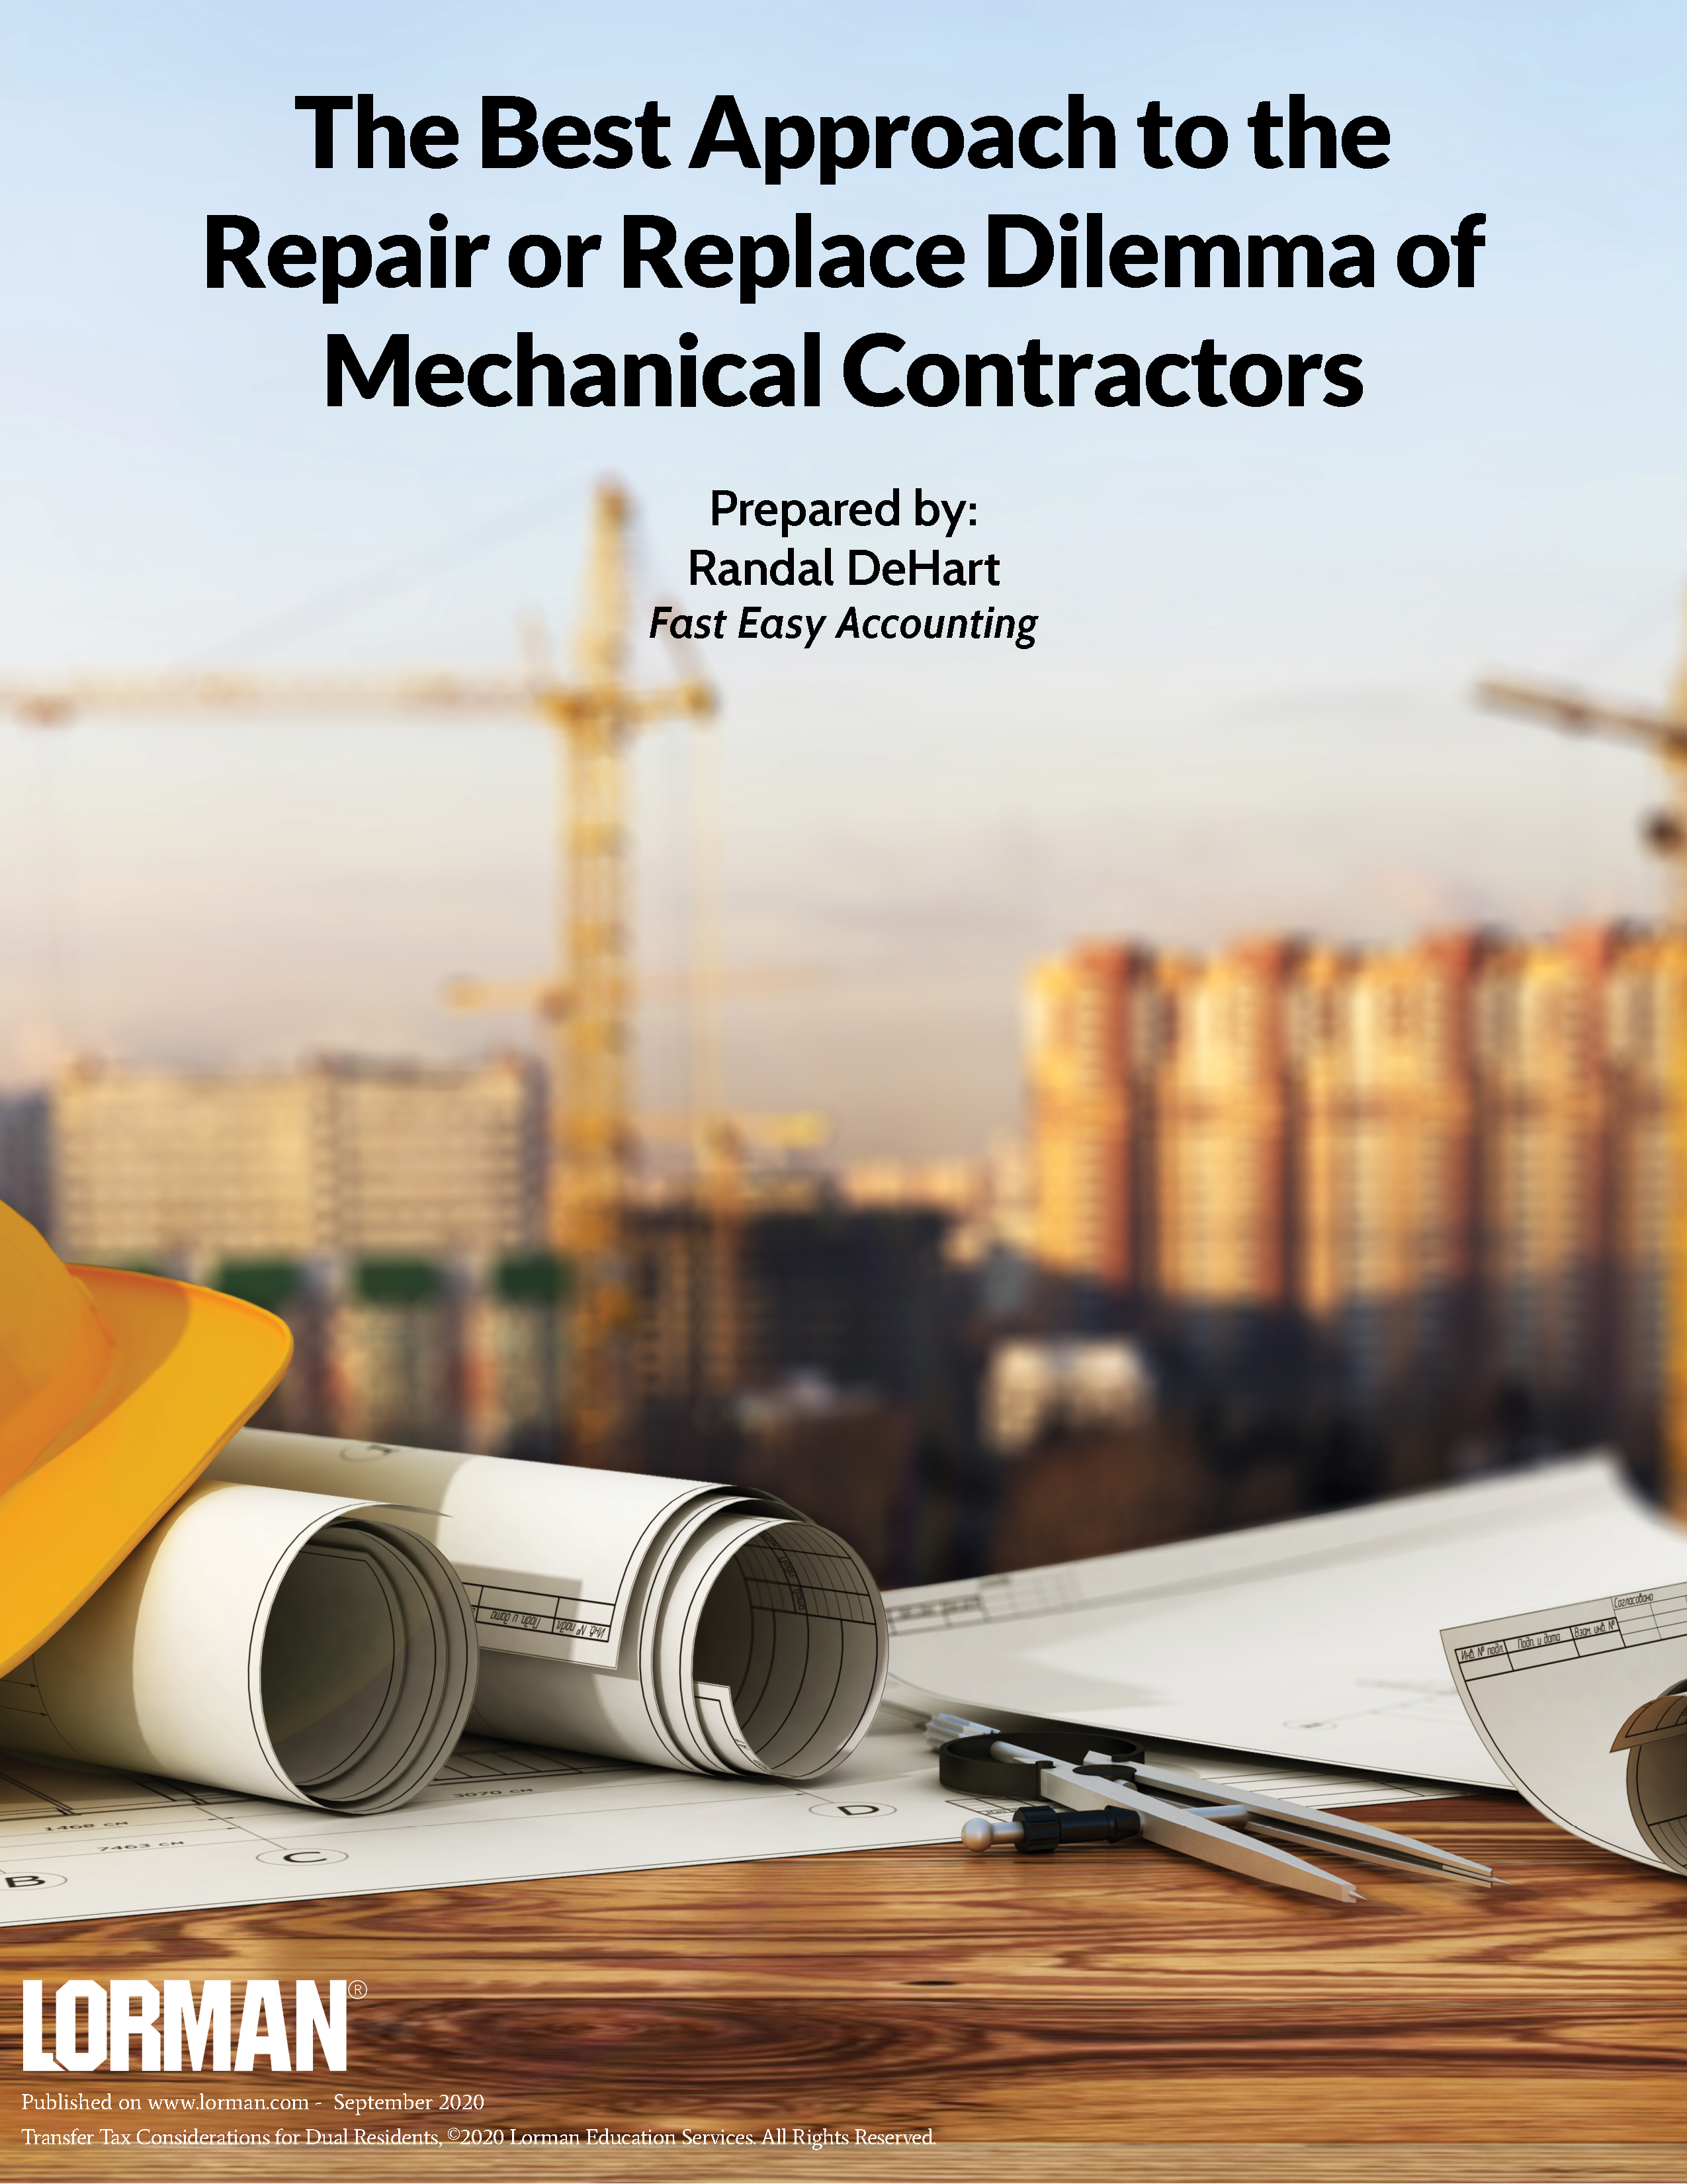 The Best Approach to the Repair or Replace Dilemma of Mechanical Contractors